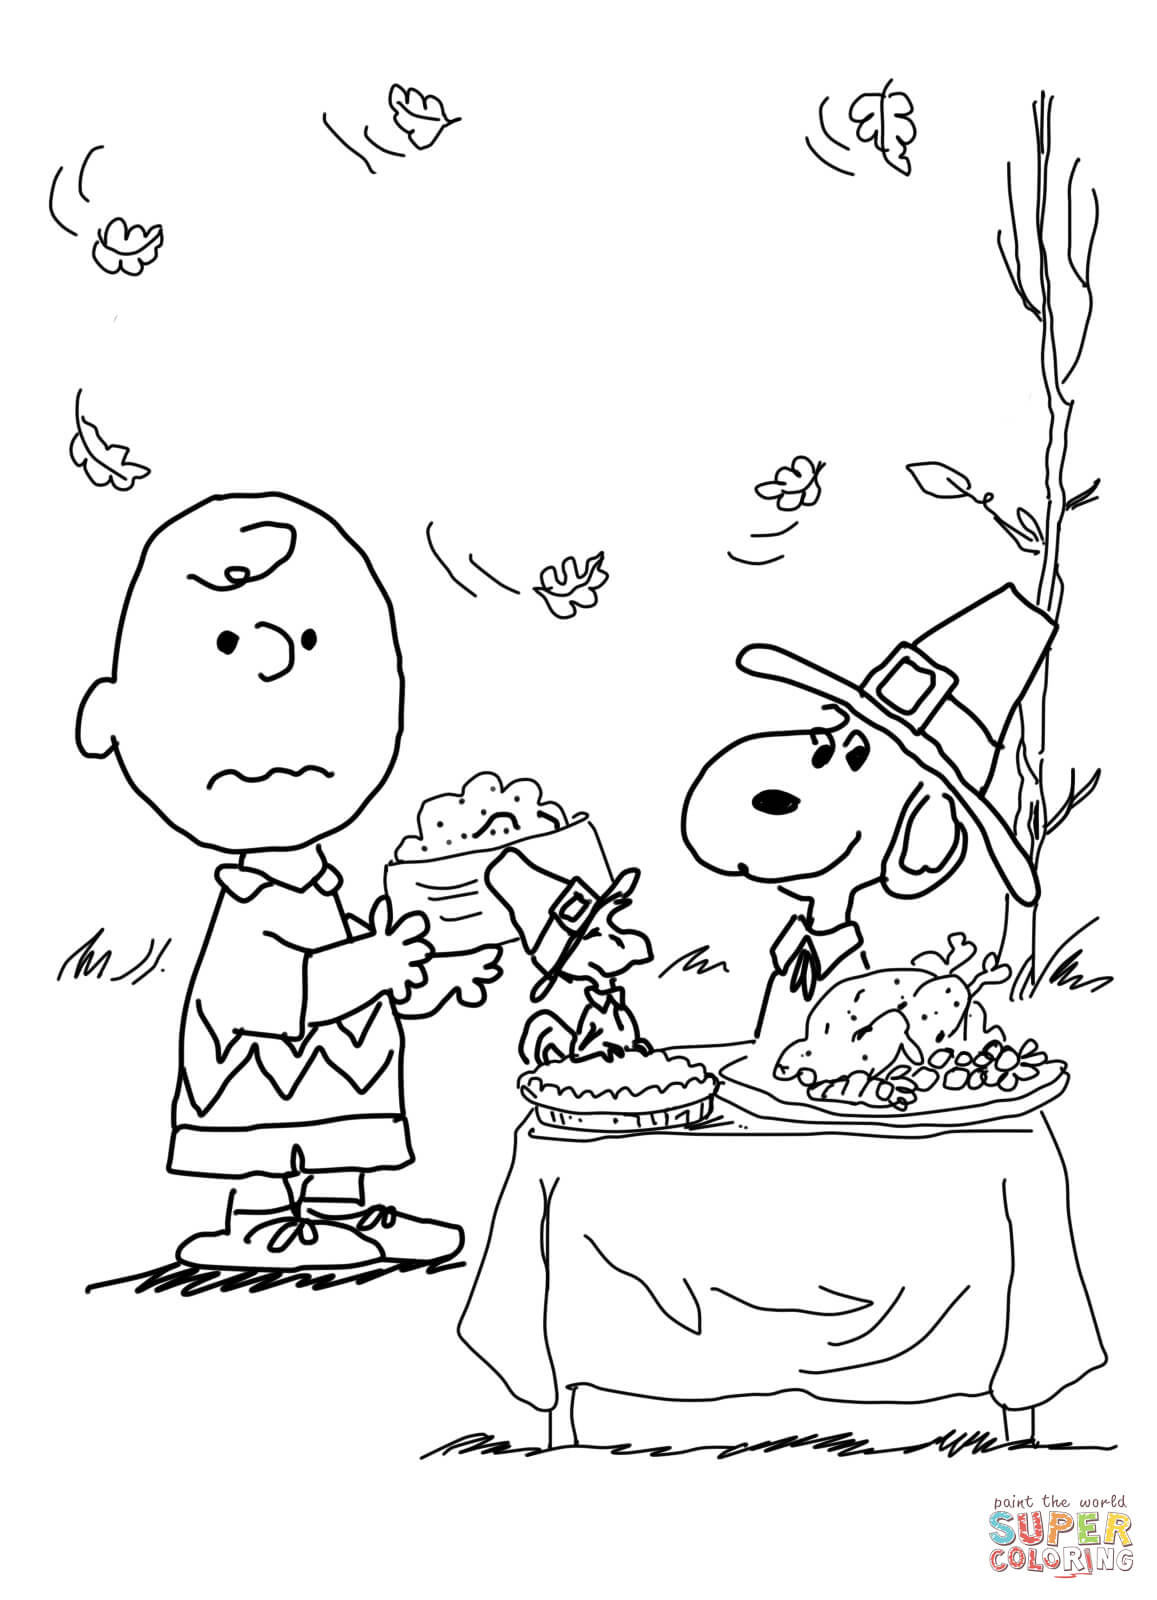 Charlie Brown Thanksgiving Coloring Page | Free Printable Coloring Pages - Free Printable Thanksgiving Coloring Pages